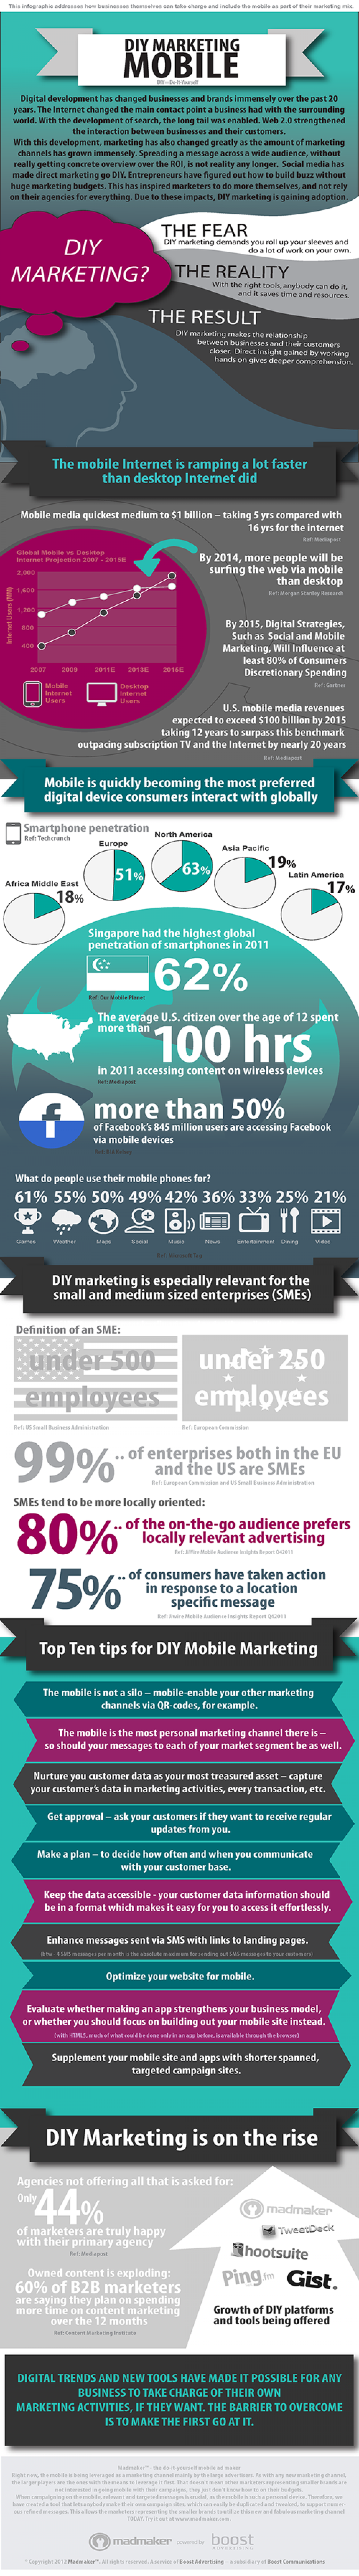 DIY marketing for mobile Infographic